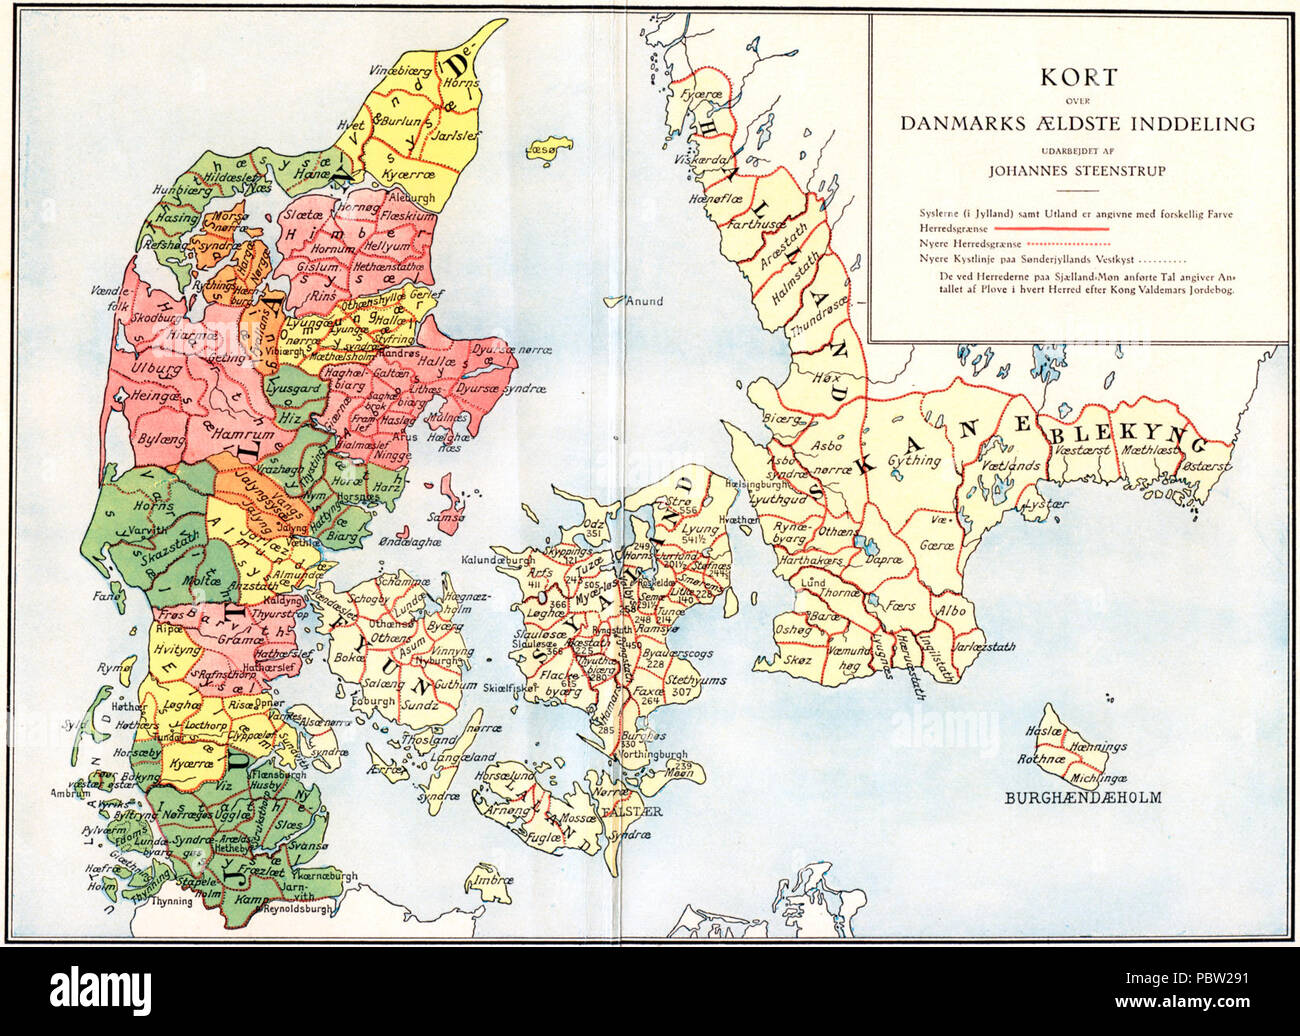 Administrative division of denmark in medieval times. - Stock Image